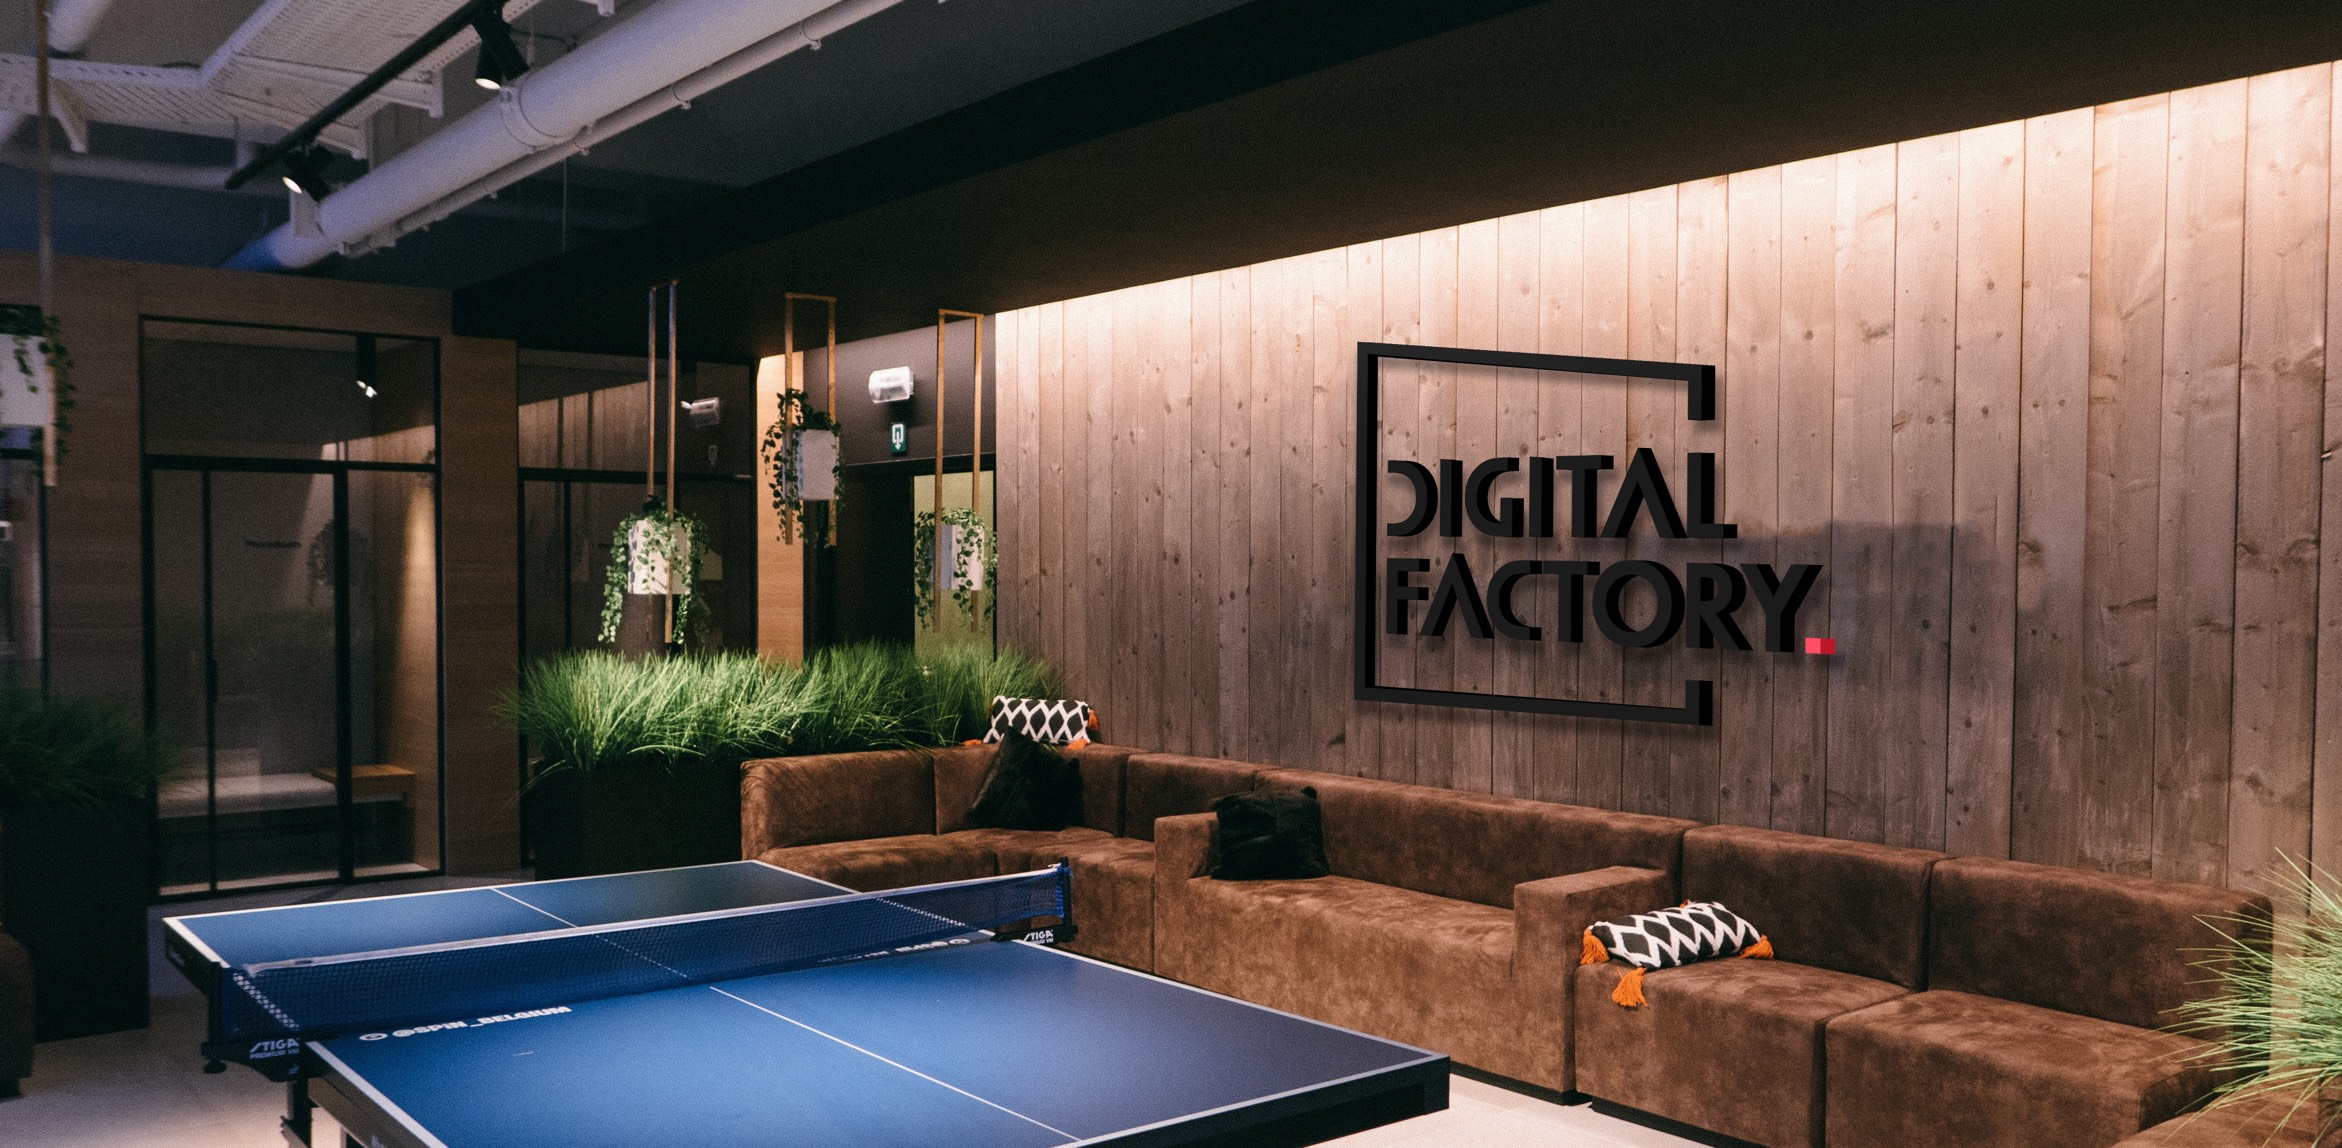 Digital Factory Office Mockup